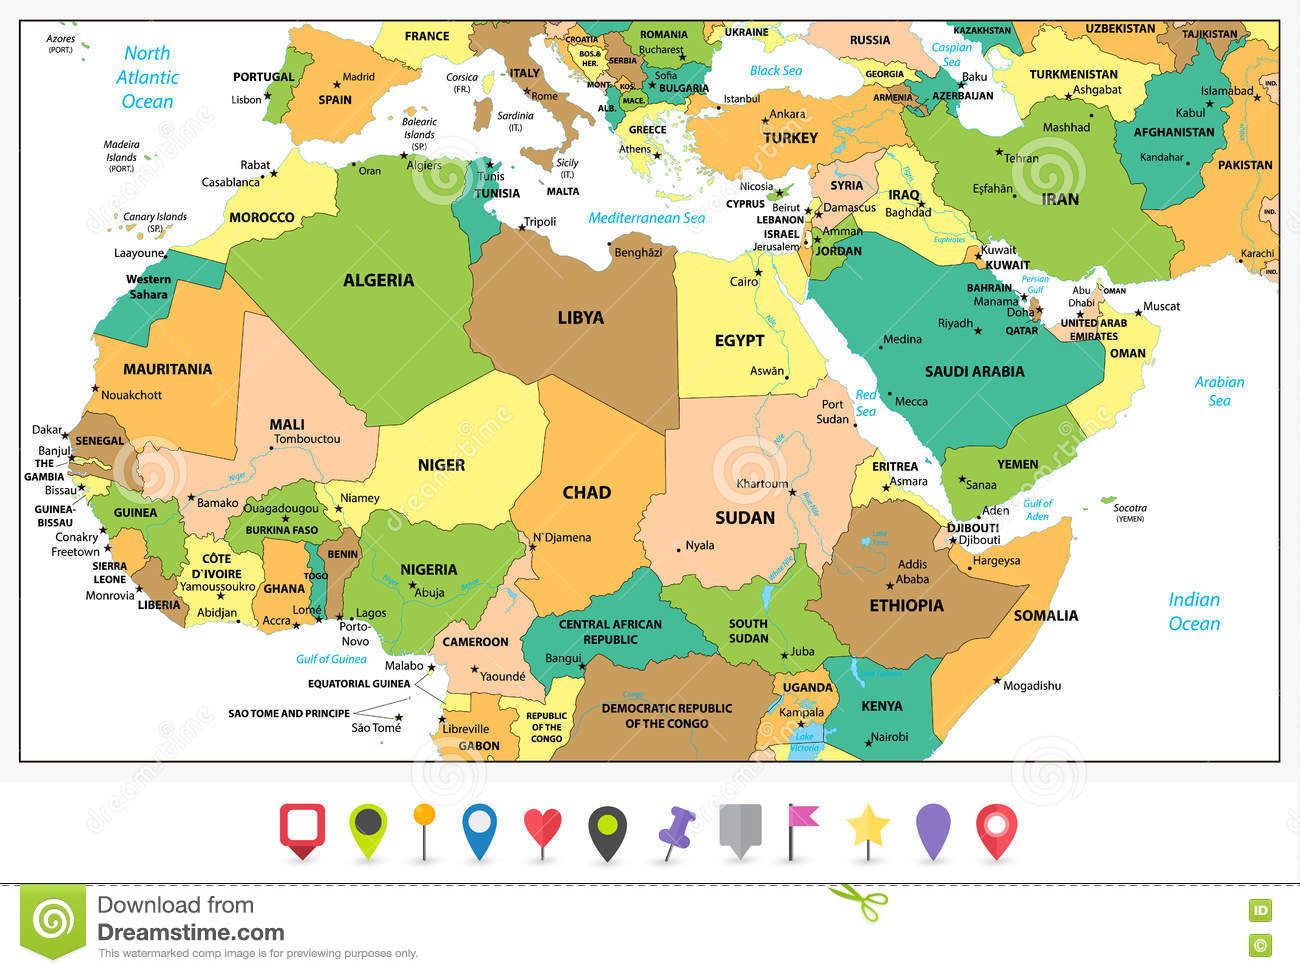 Detailed Political Map Of Northern Africa And The Middle East An ...